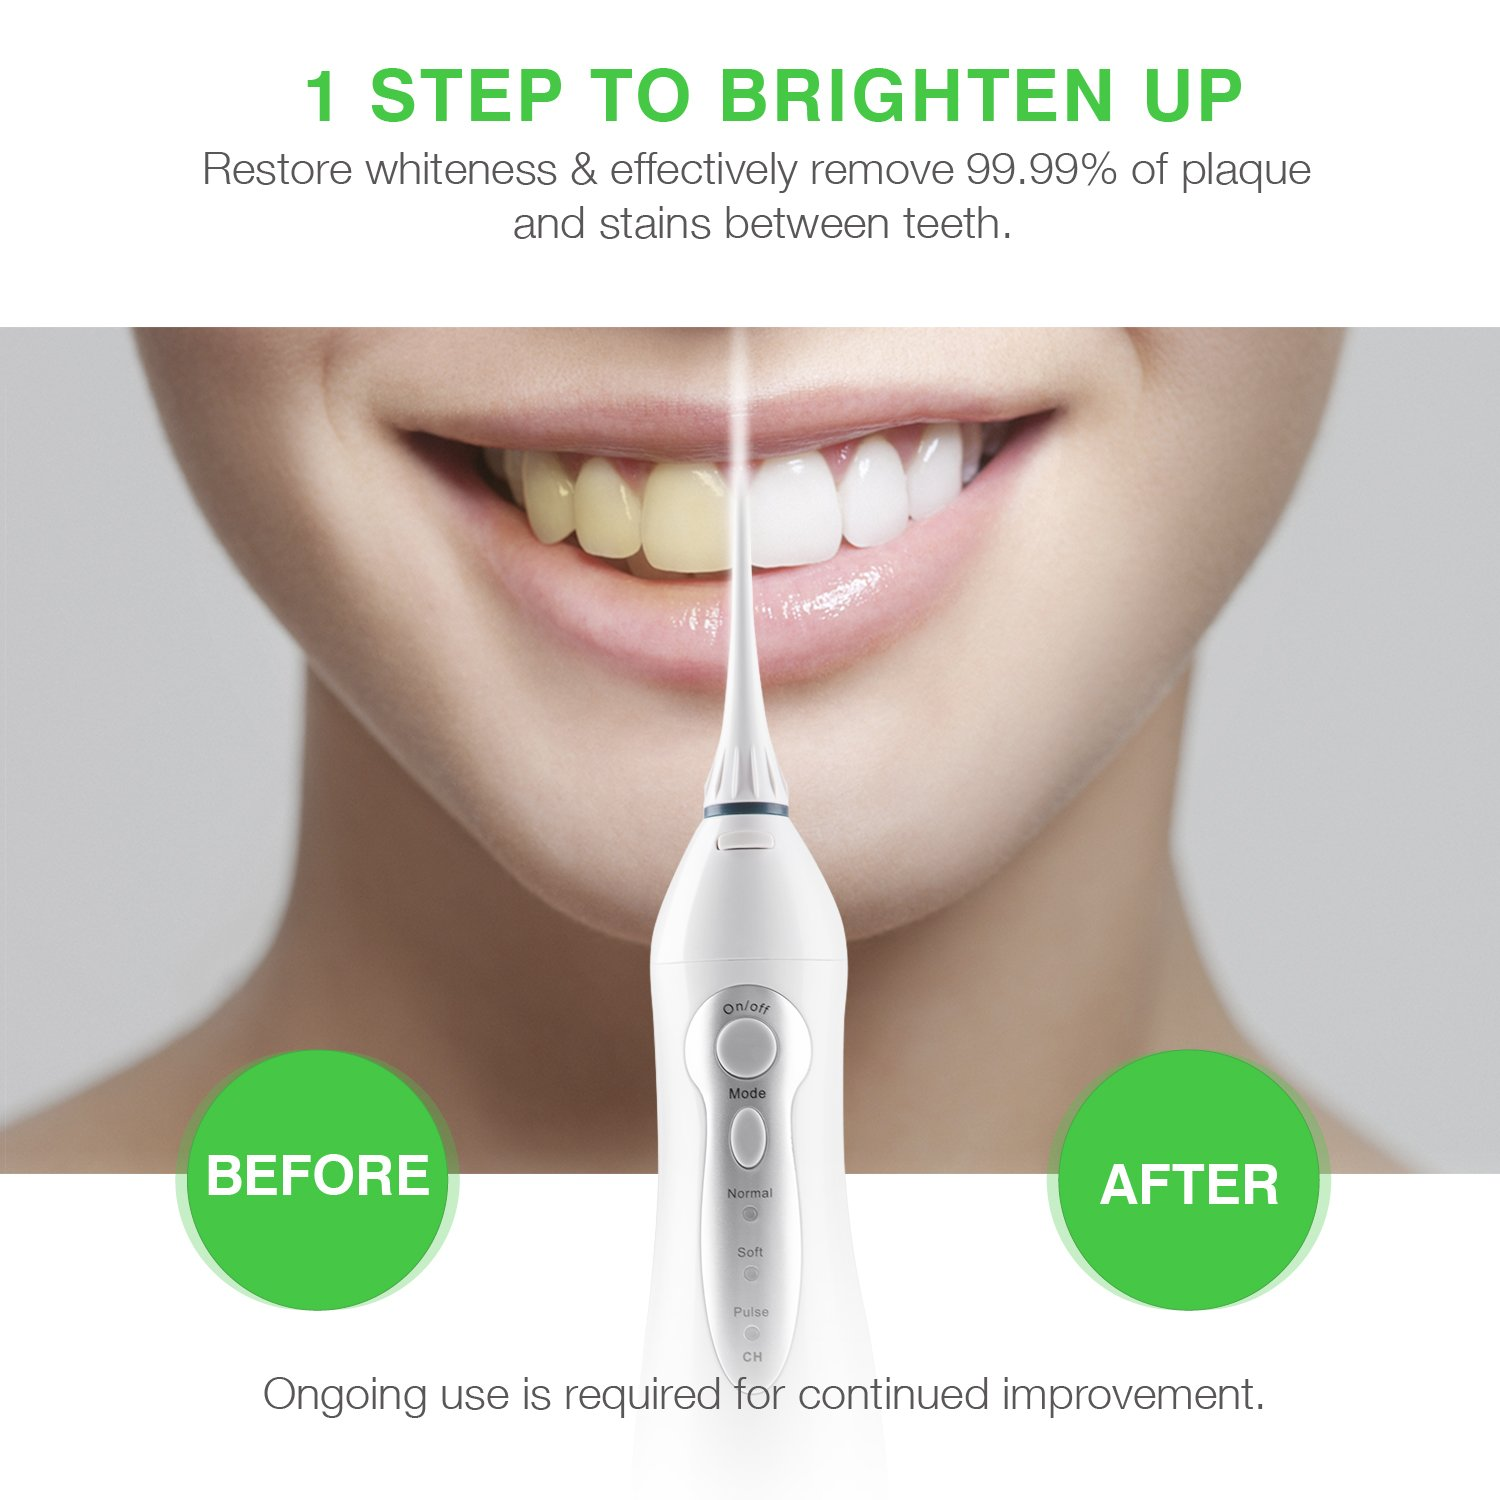 Water Flosser Professional Cordless Dental Oral Irrigator - Portable and Rechargeable IPX7 Waterproof 3 Modes Water Flossing with 4 Jet Tips for Home and Travel,Braces & Bridges Care by Greenvida (Image #2)